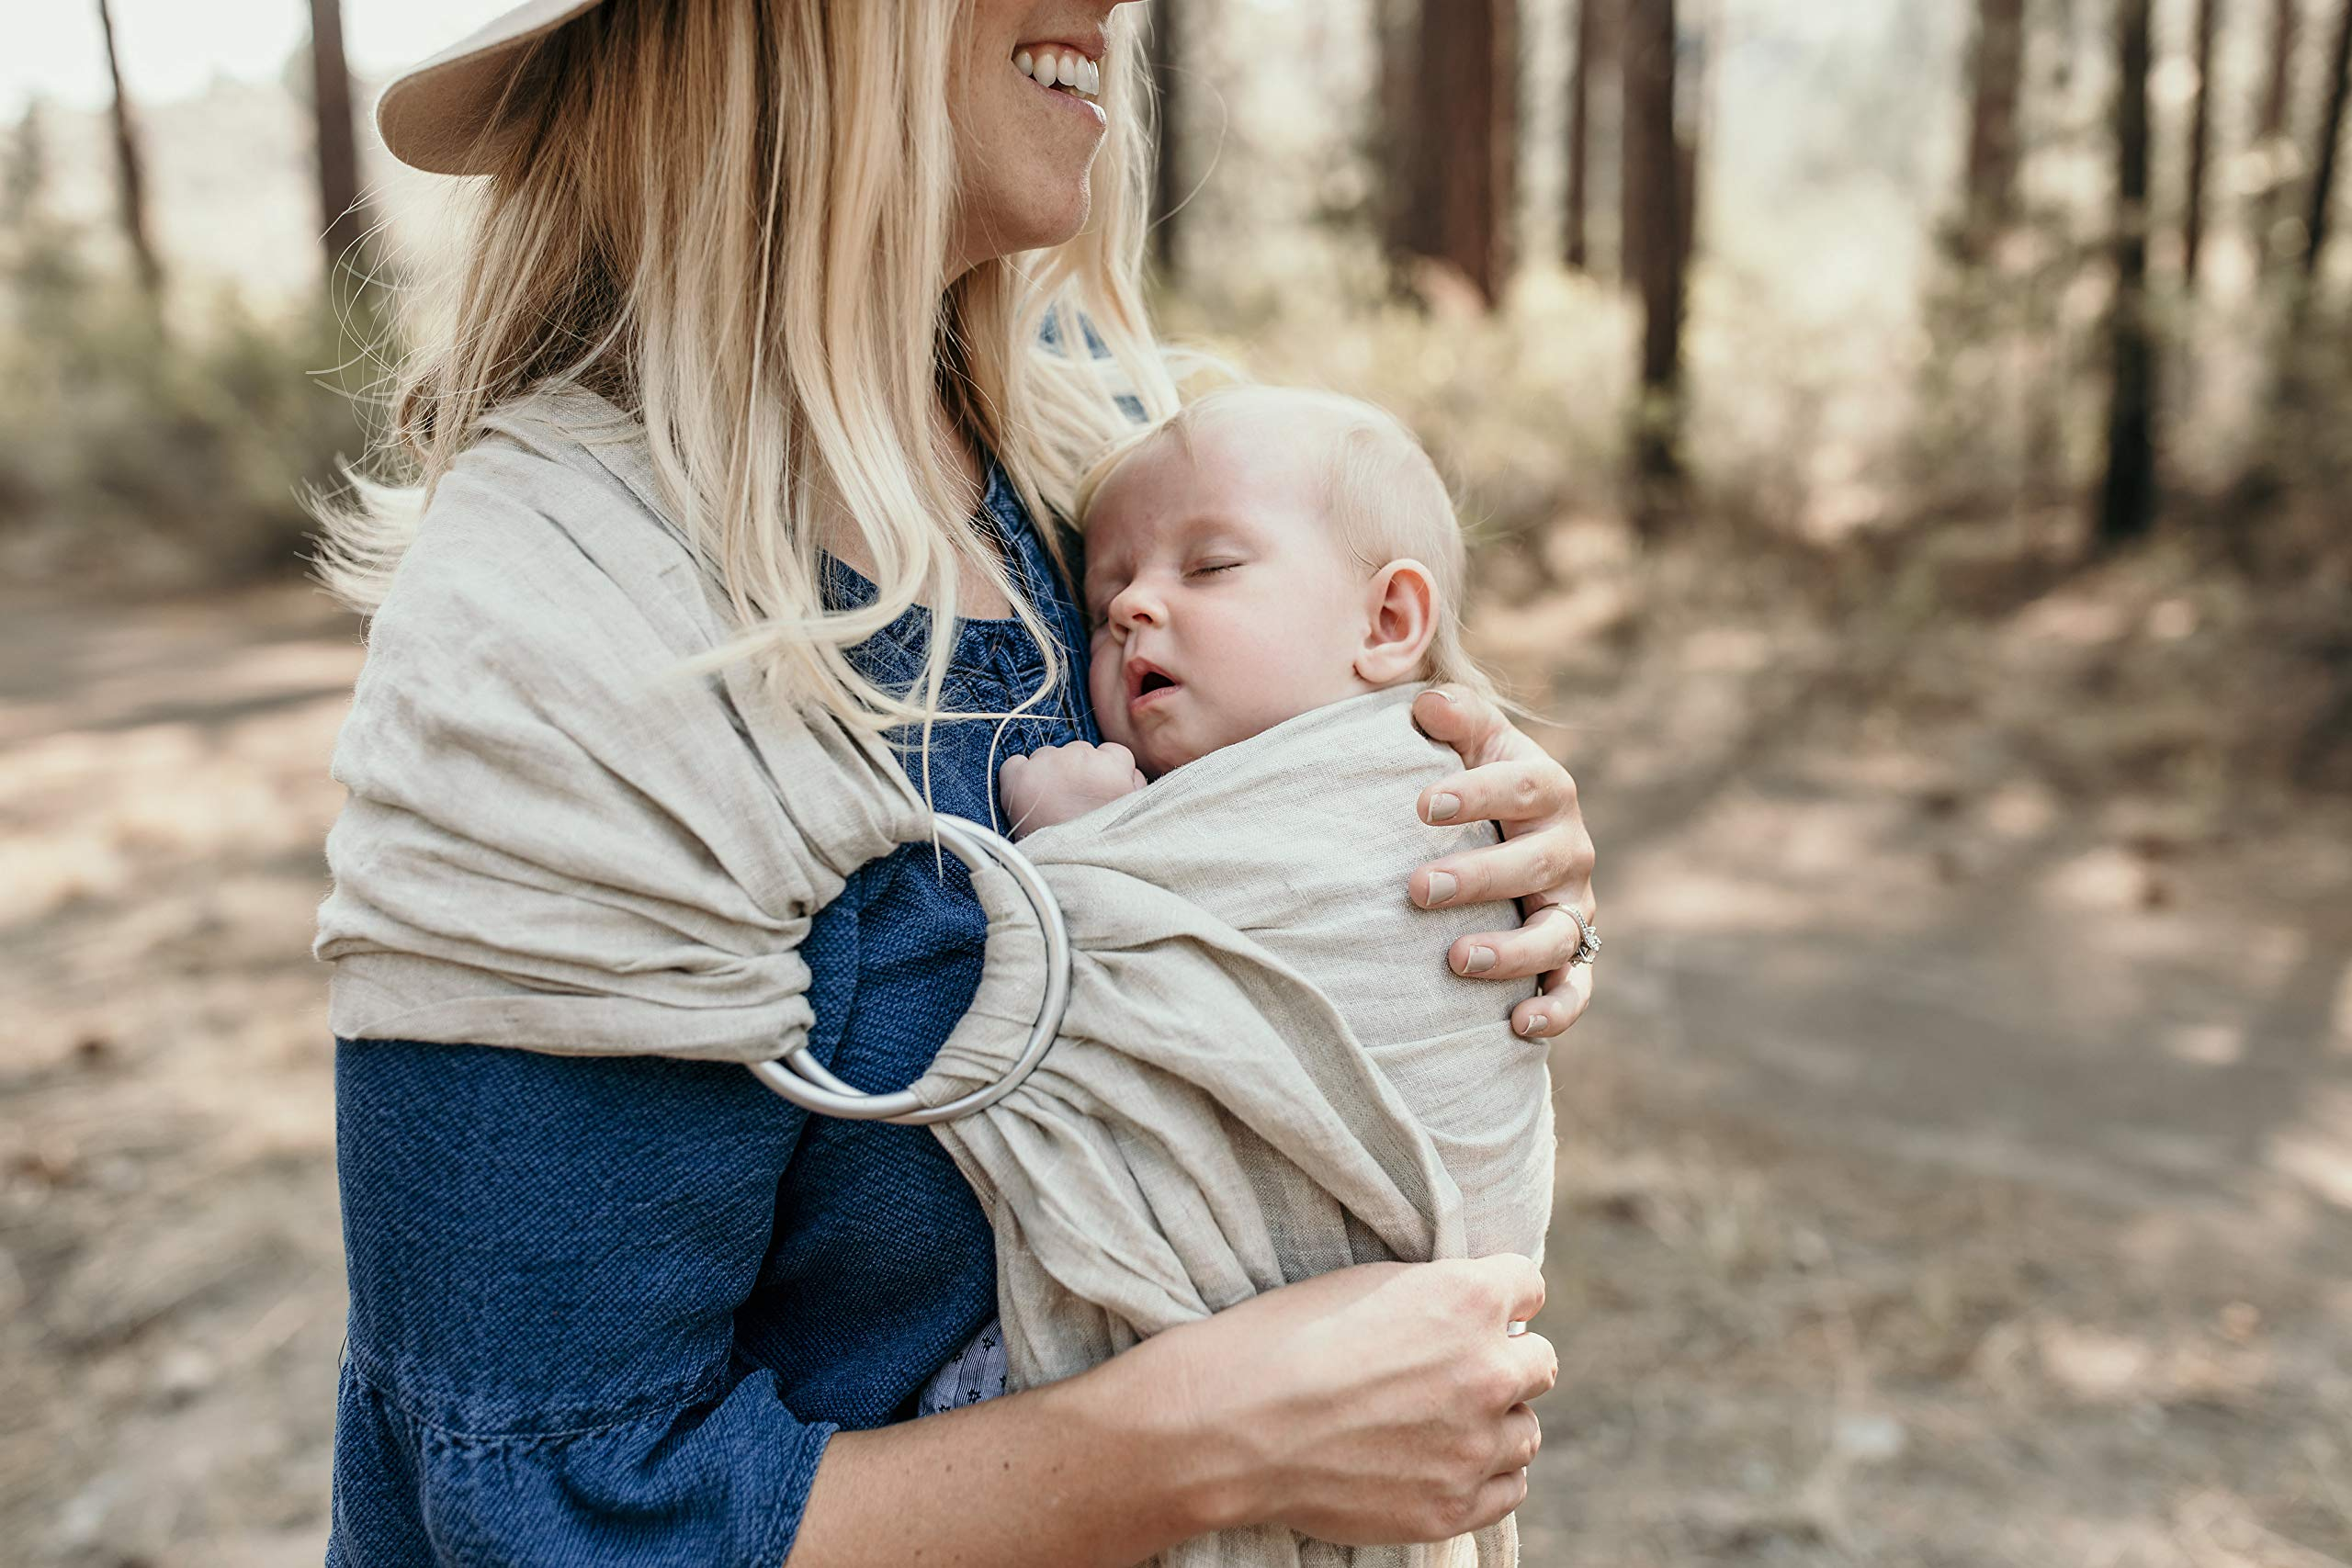 Hip Baby Wrap Linen Ring Sling Baby Carrier for Infants and Toddlers (Oat) Hip Baby Wrap Our slings are all fair trade and eco-friendly. Made with beautiful 100% linen, breathable fabric and with top quality solid aluminum sling rings. For babies 8 - 35 lbs. 4